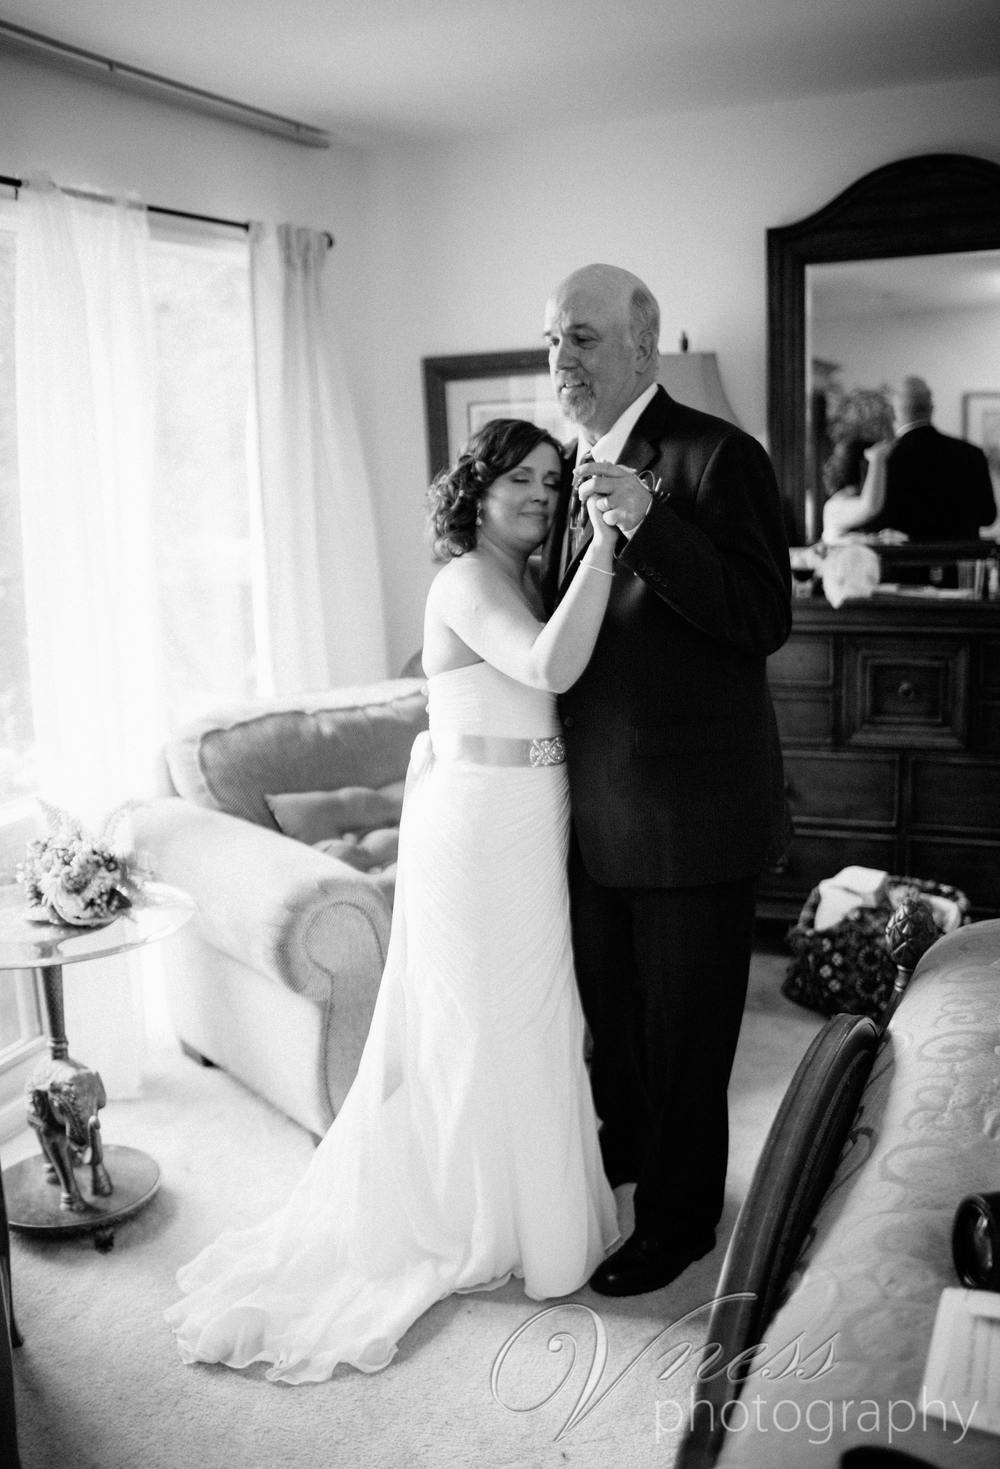 Vnessphotography_Cameron Wedding-64.jpg